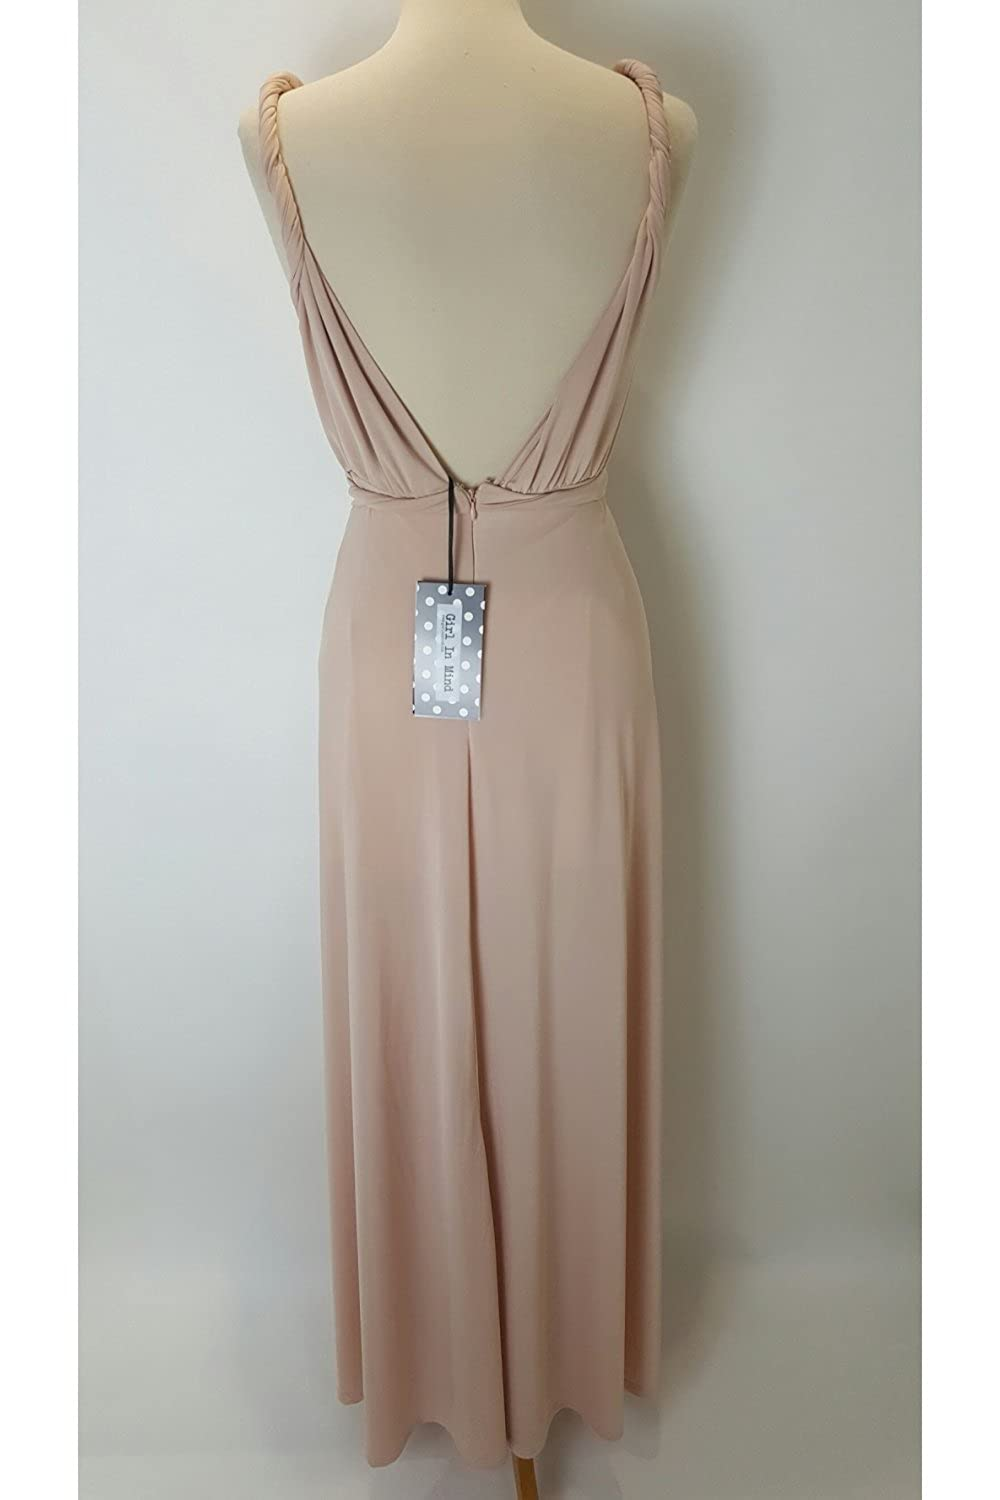 Girl In Mind SI2063 Nude Grecian Style Jersey Dress